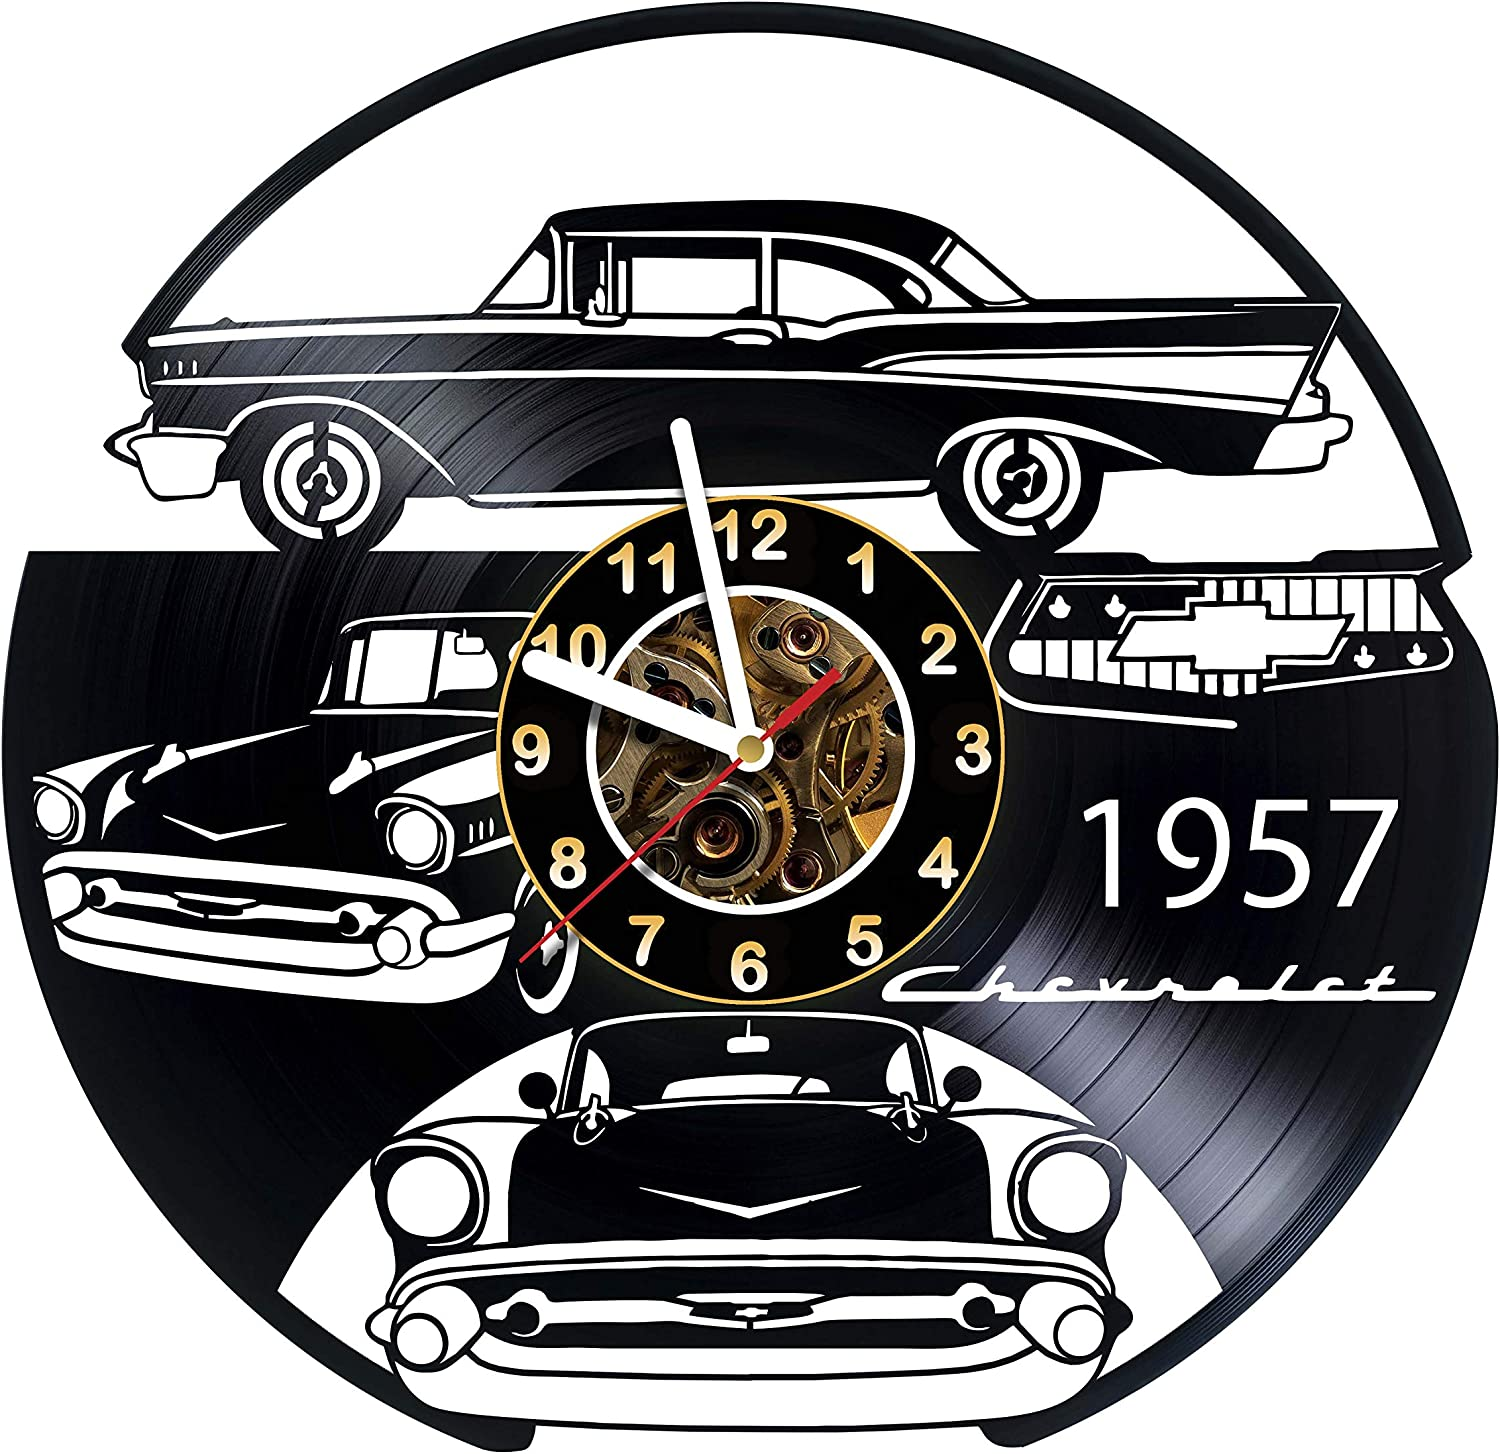 MZshop25 Vinyl Record Wall Clock Car Chevy Compatible Daily bargain sale Dealing full price reduction 1957 with